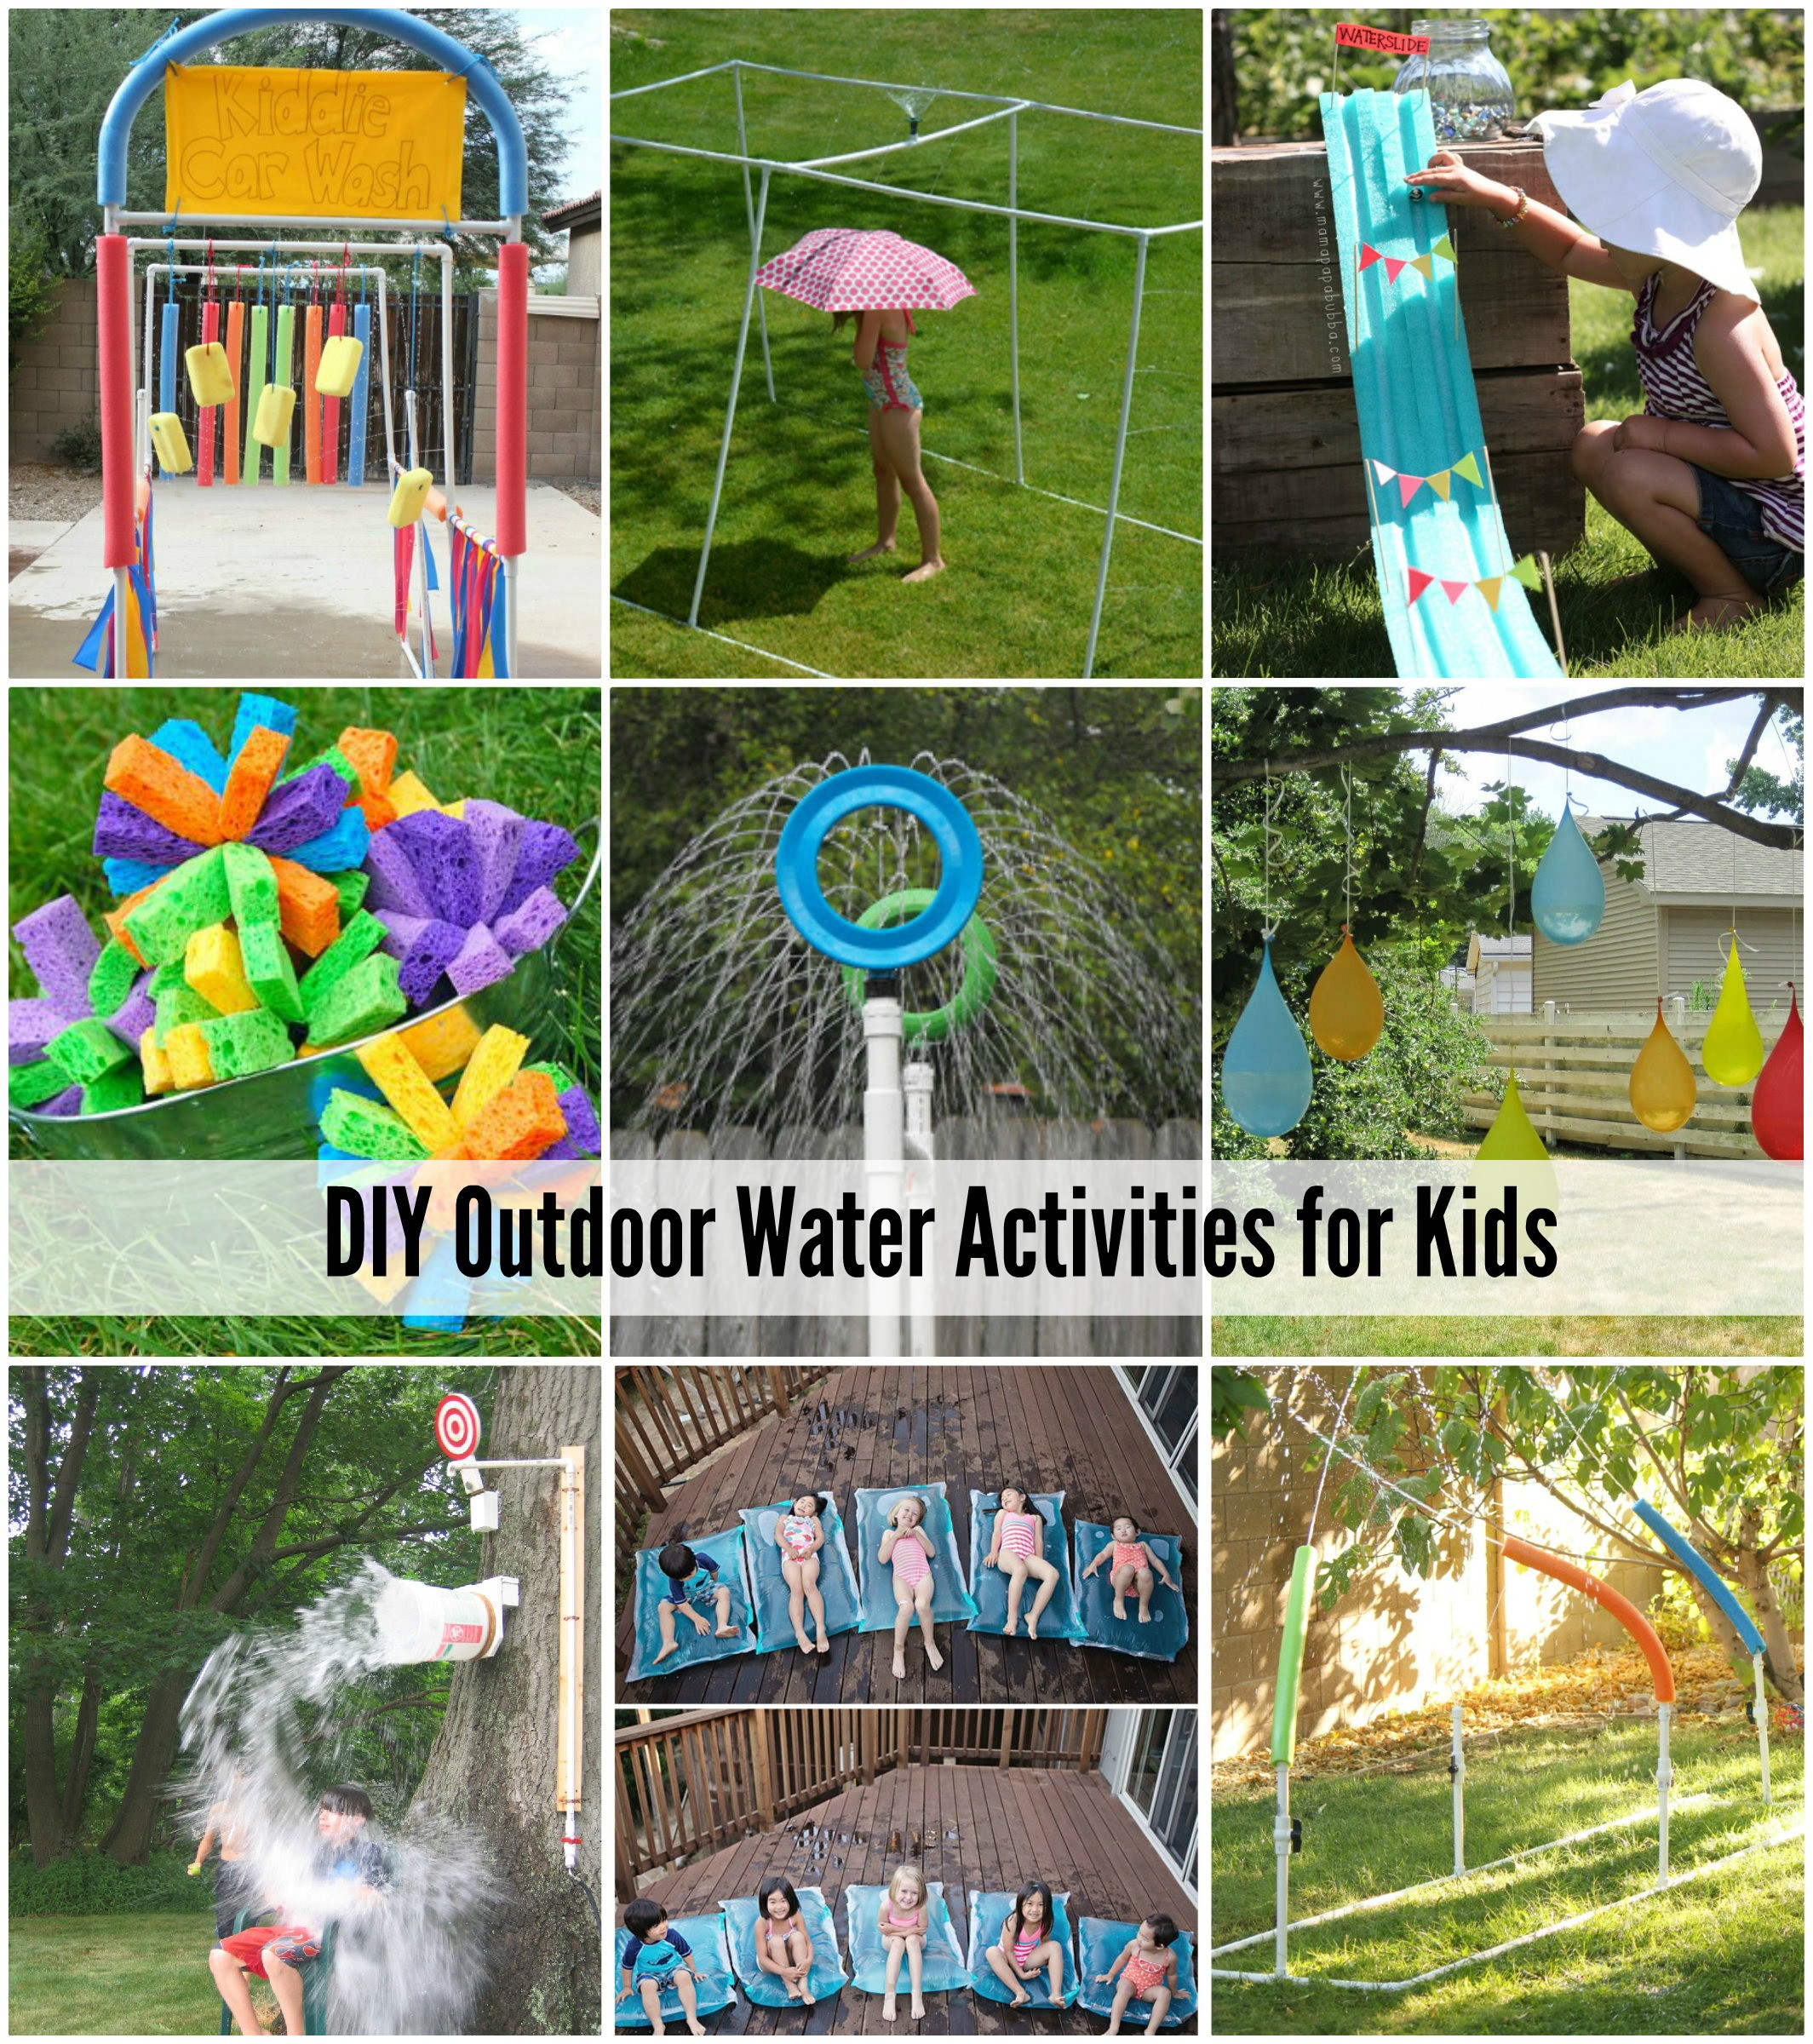 Best ideas about DIY For Kids . Save or Pin 25 Water Games & Activities For Kids Now.